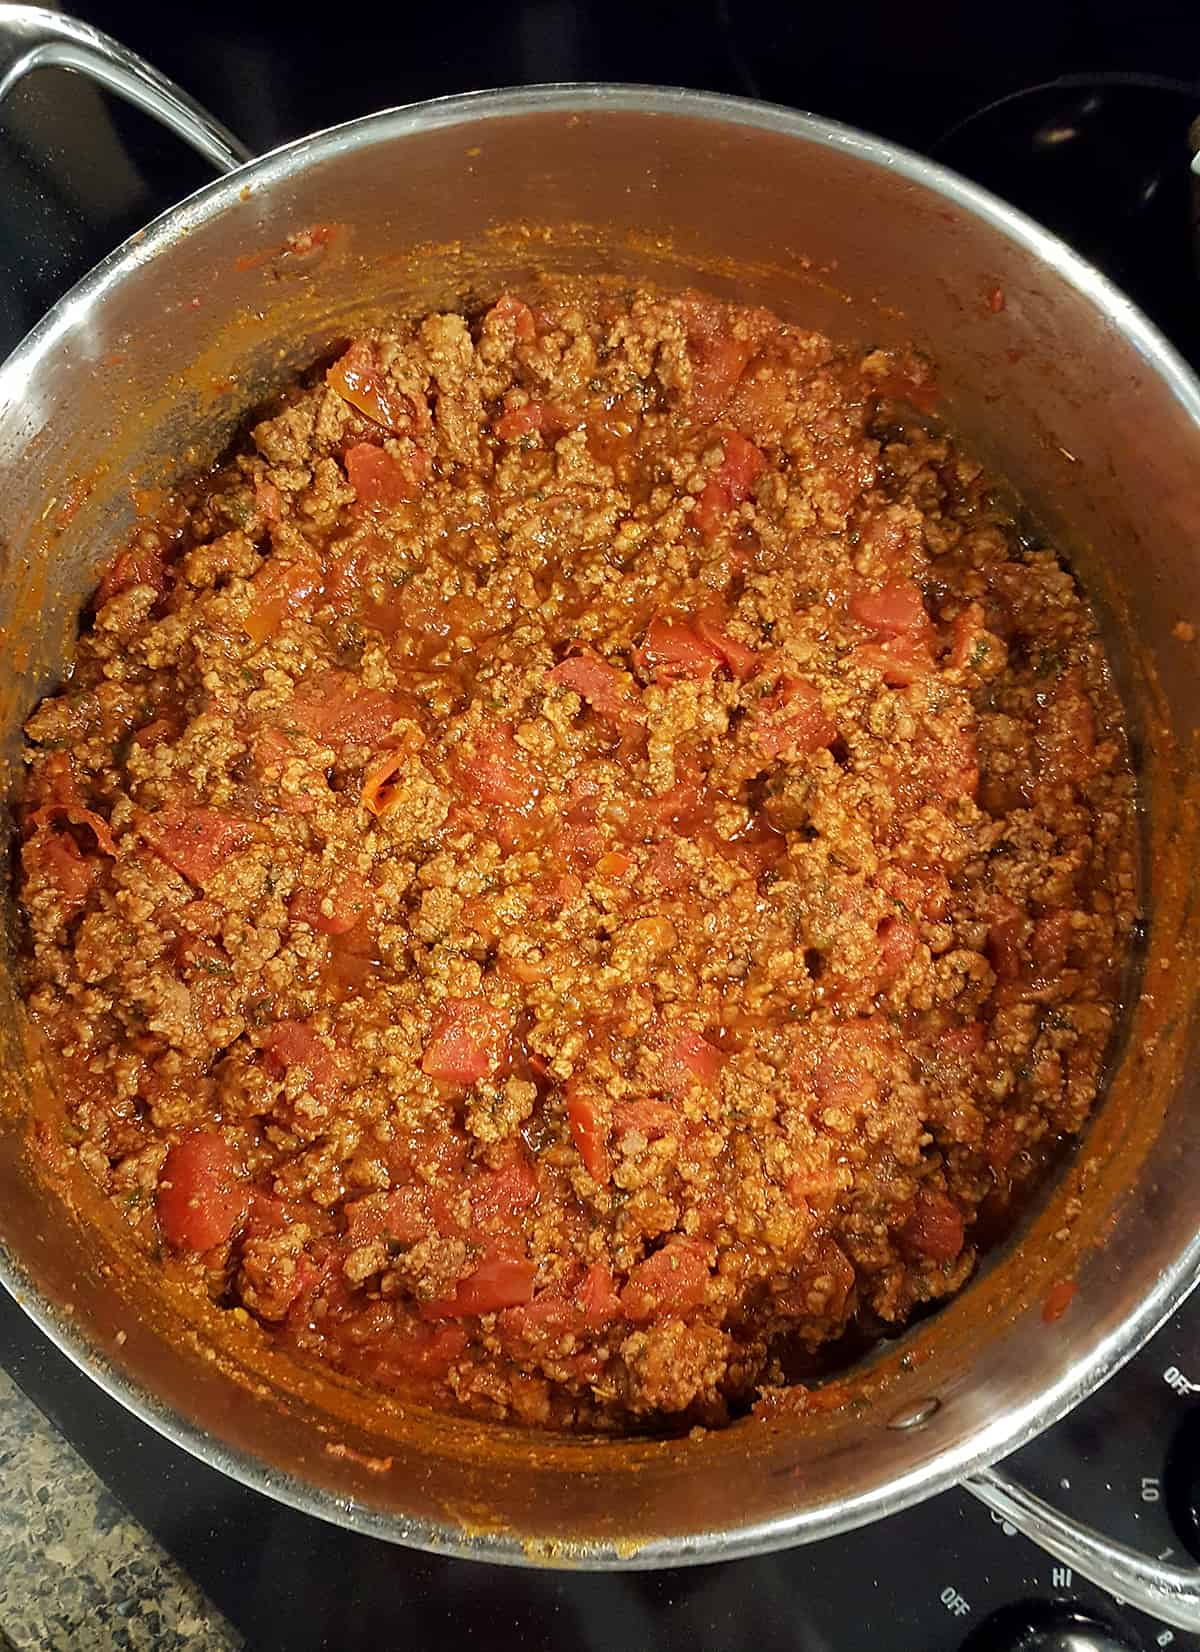 Pan with cooked meat sauce to be used in the Egg Noodle Lasagna